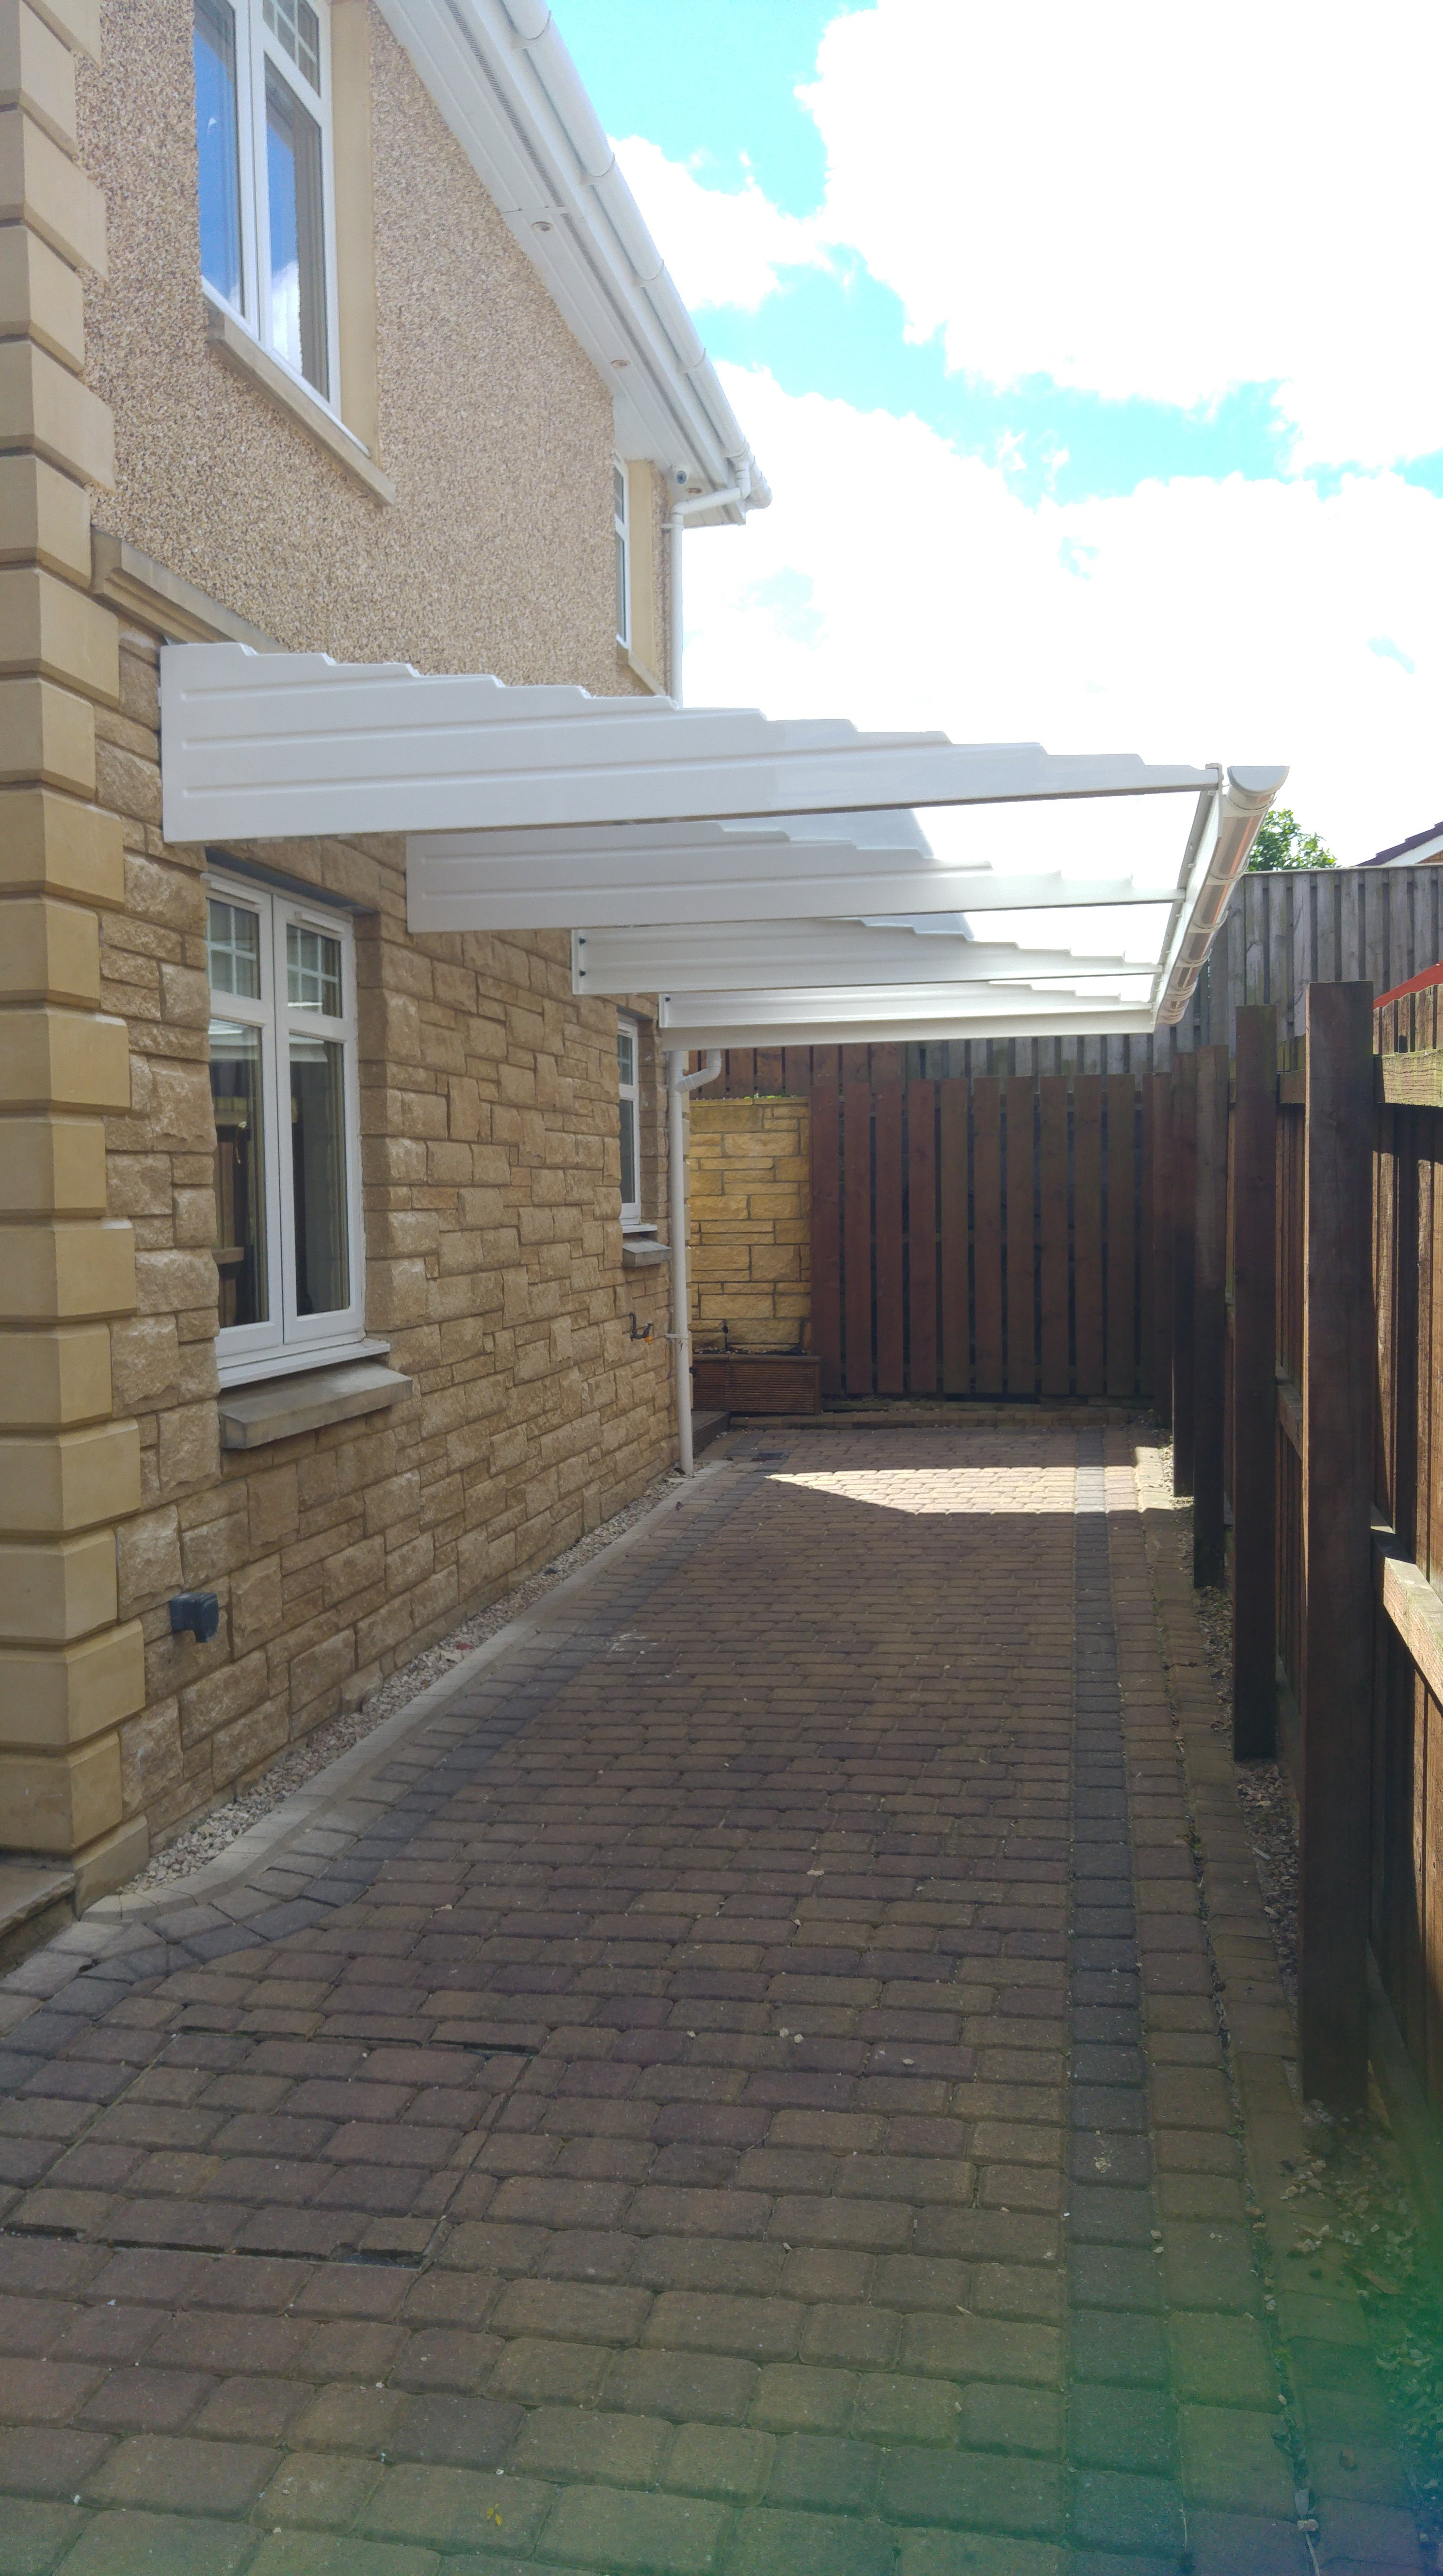 High-quality awnings